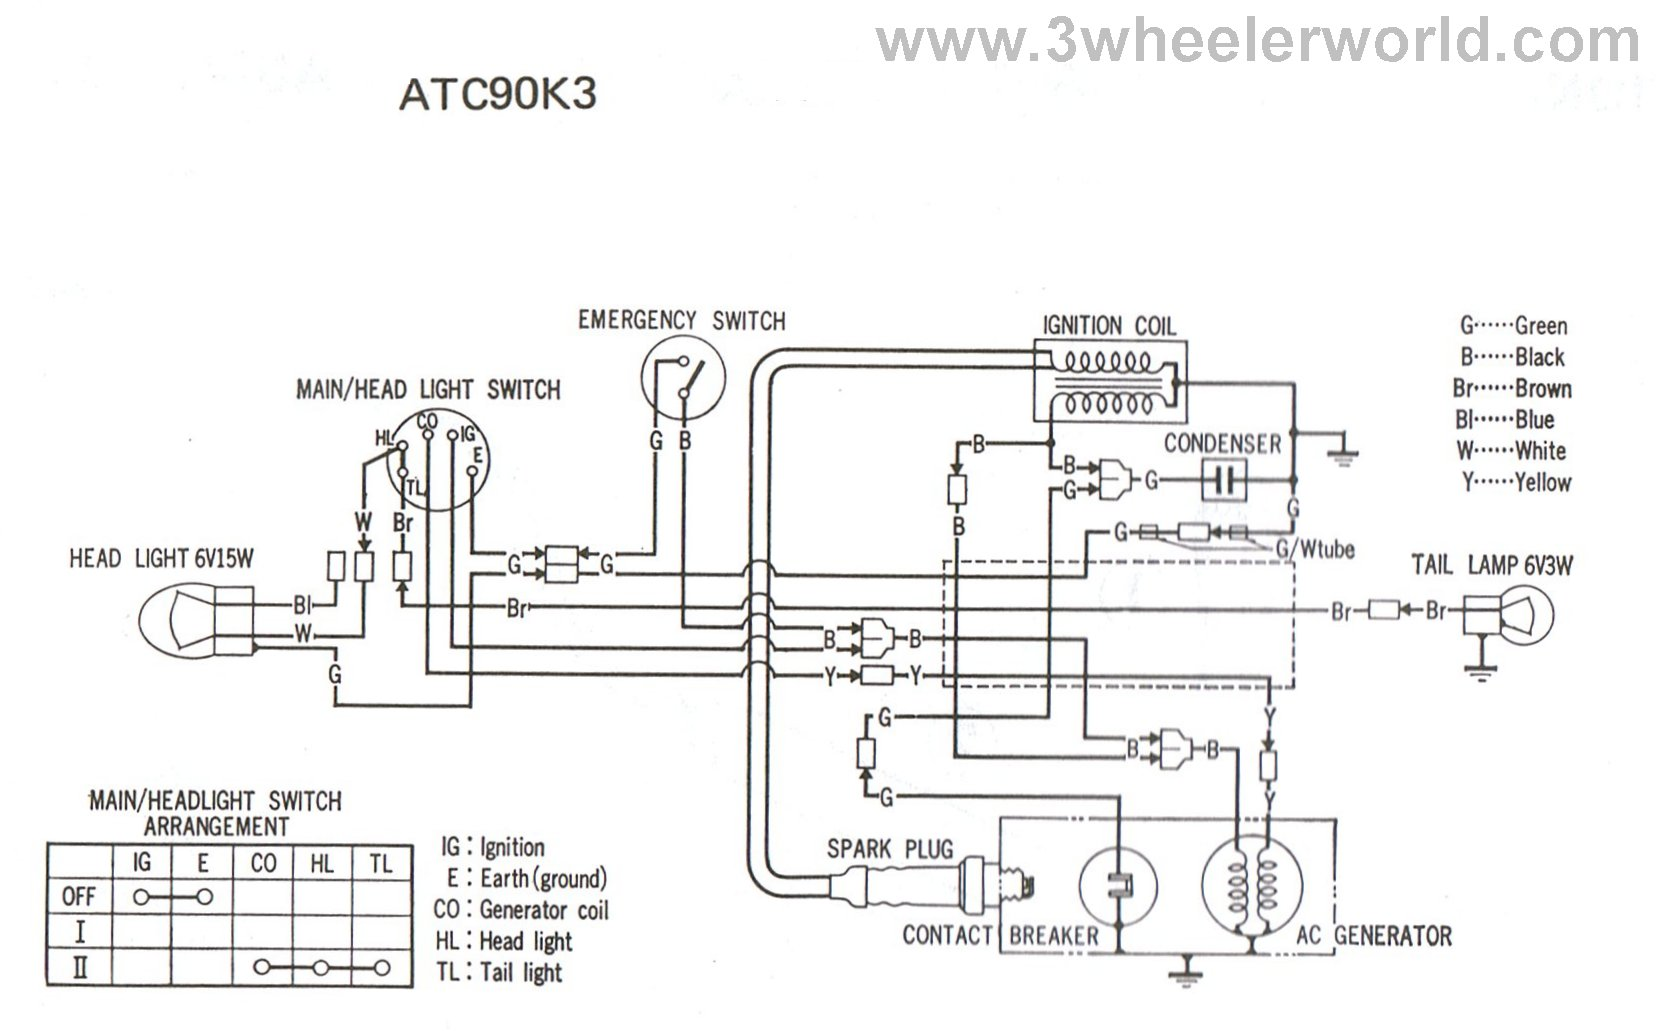 ATC90K3HM wiring diagram polaris xplorer 300 the wiring diagram polaris scrambler 400 wiring diagram at readyjetset.co